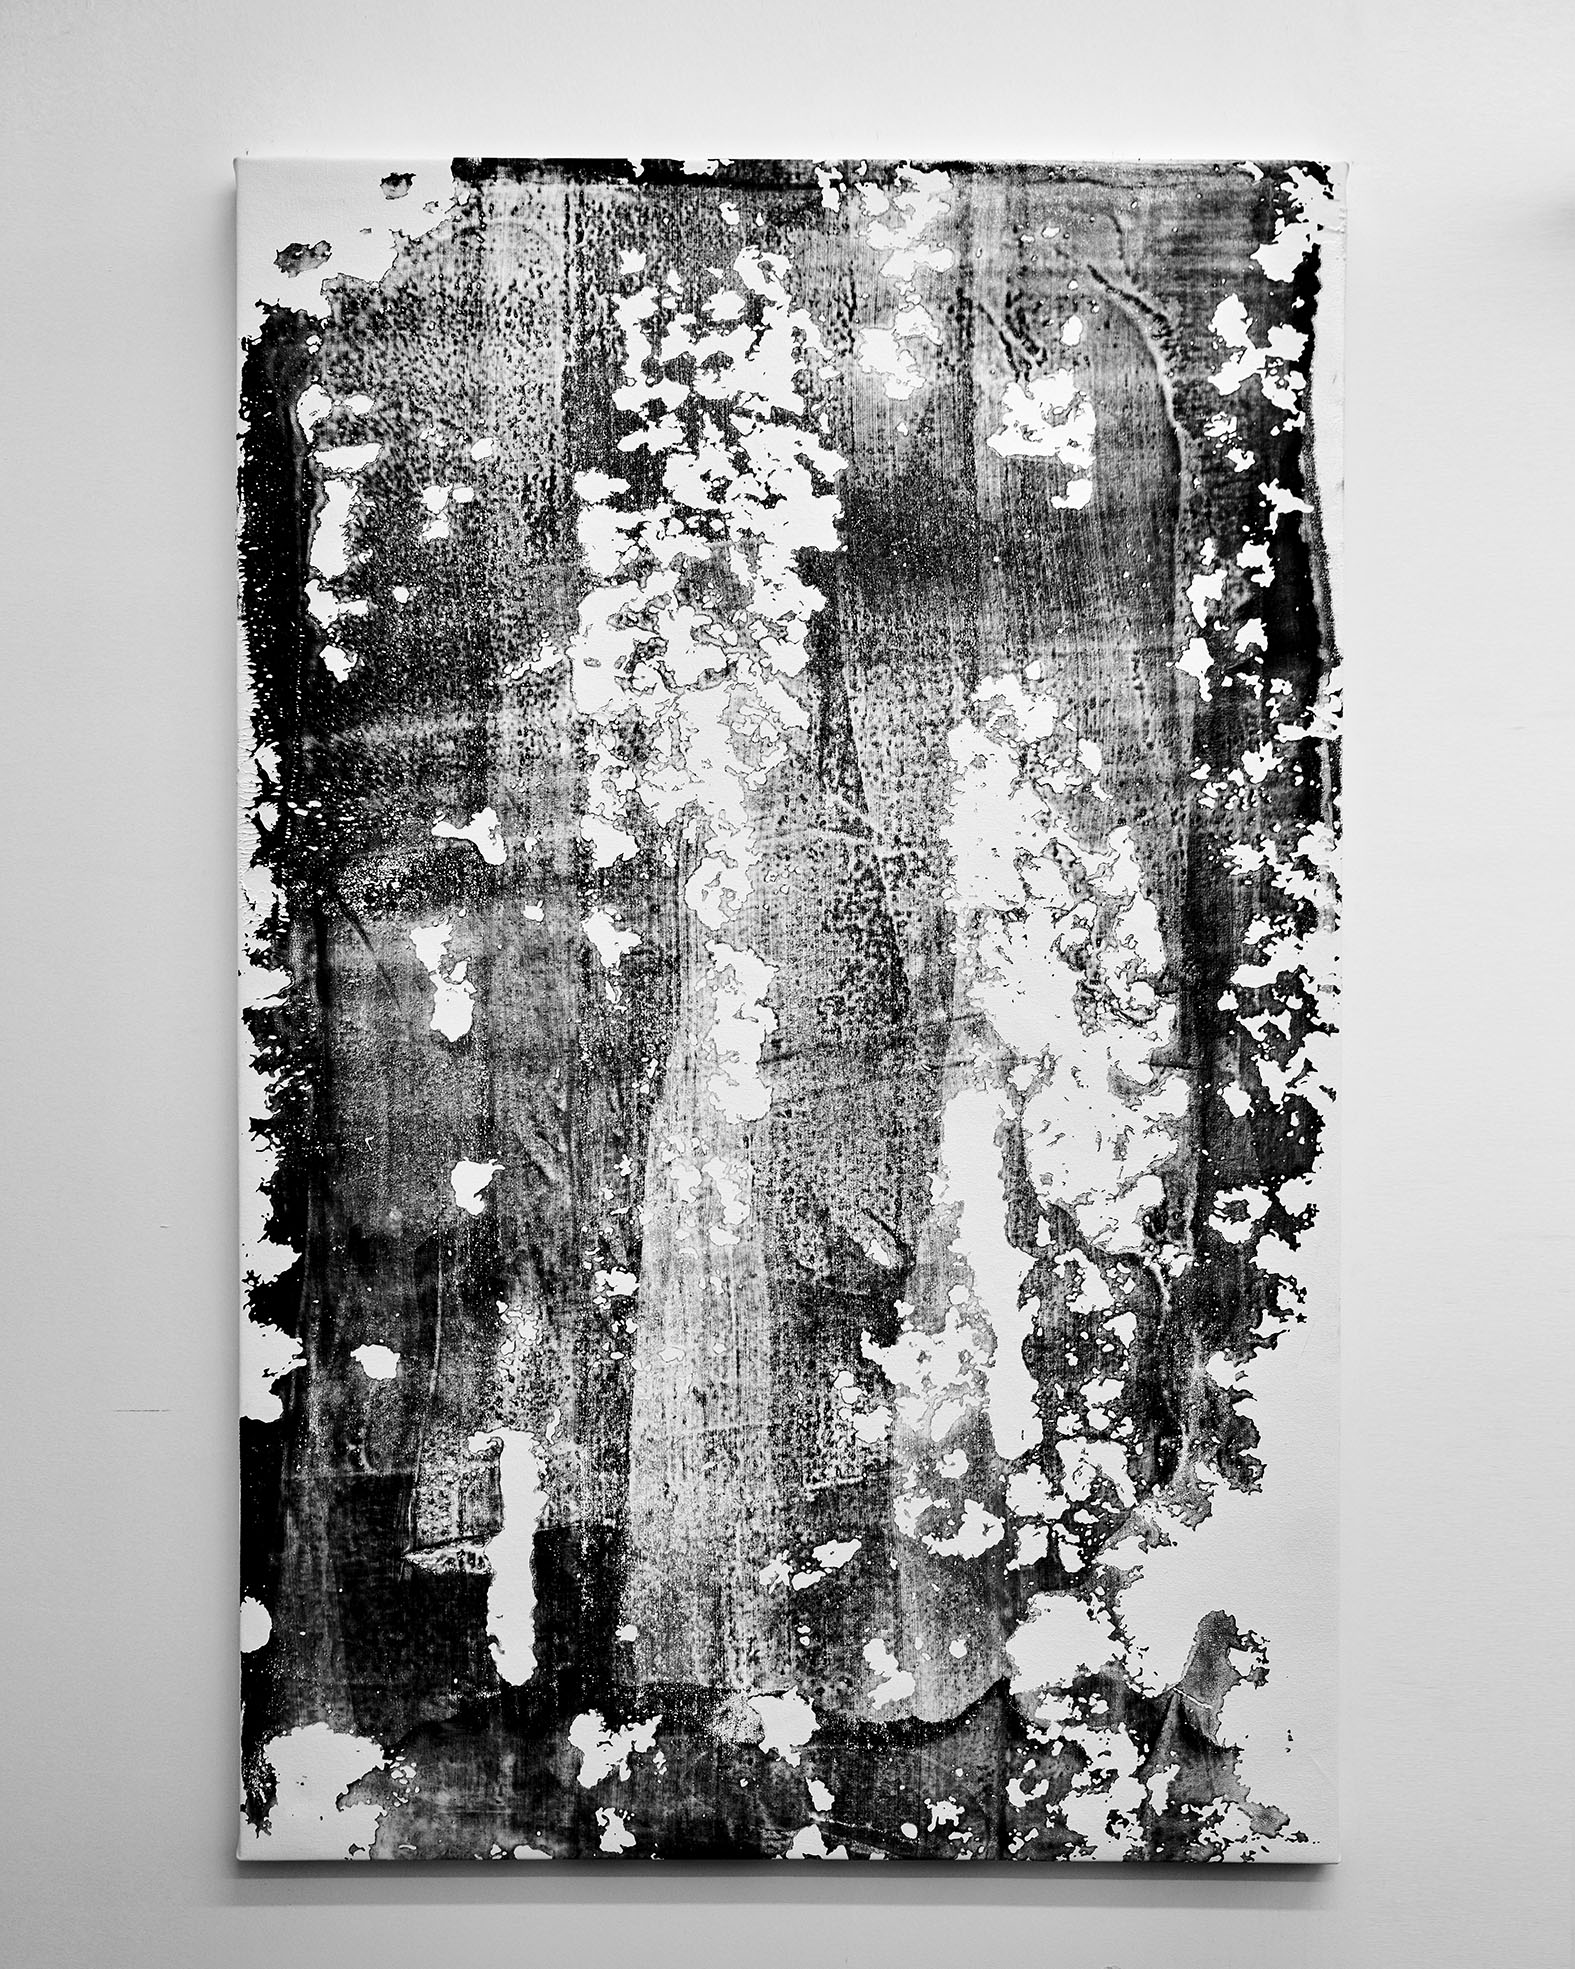 SILKSCREEN_ALDO_02 BLACK AND WHITE.jpg